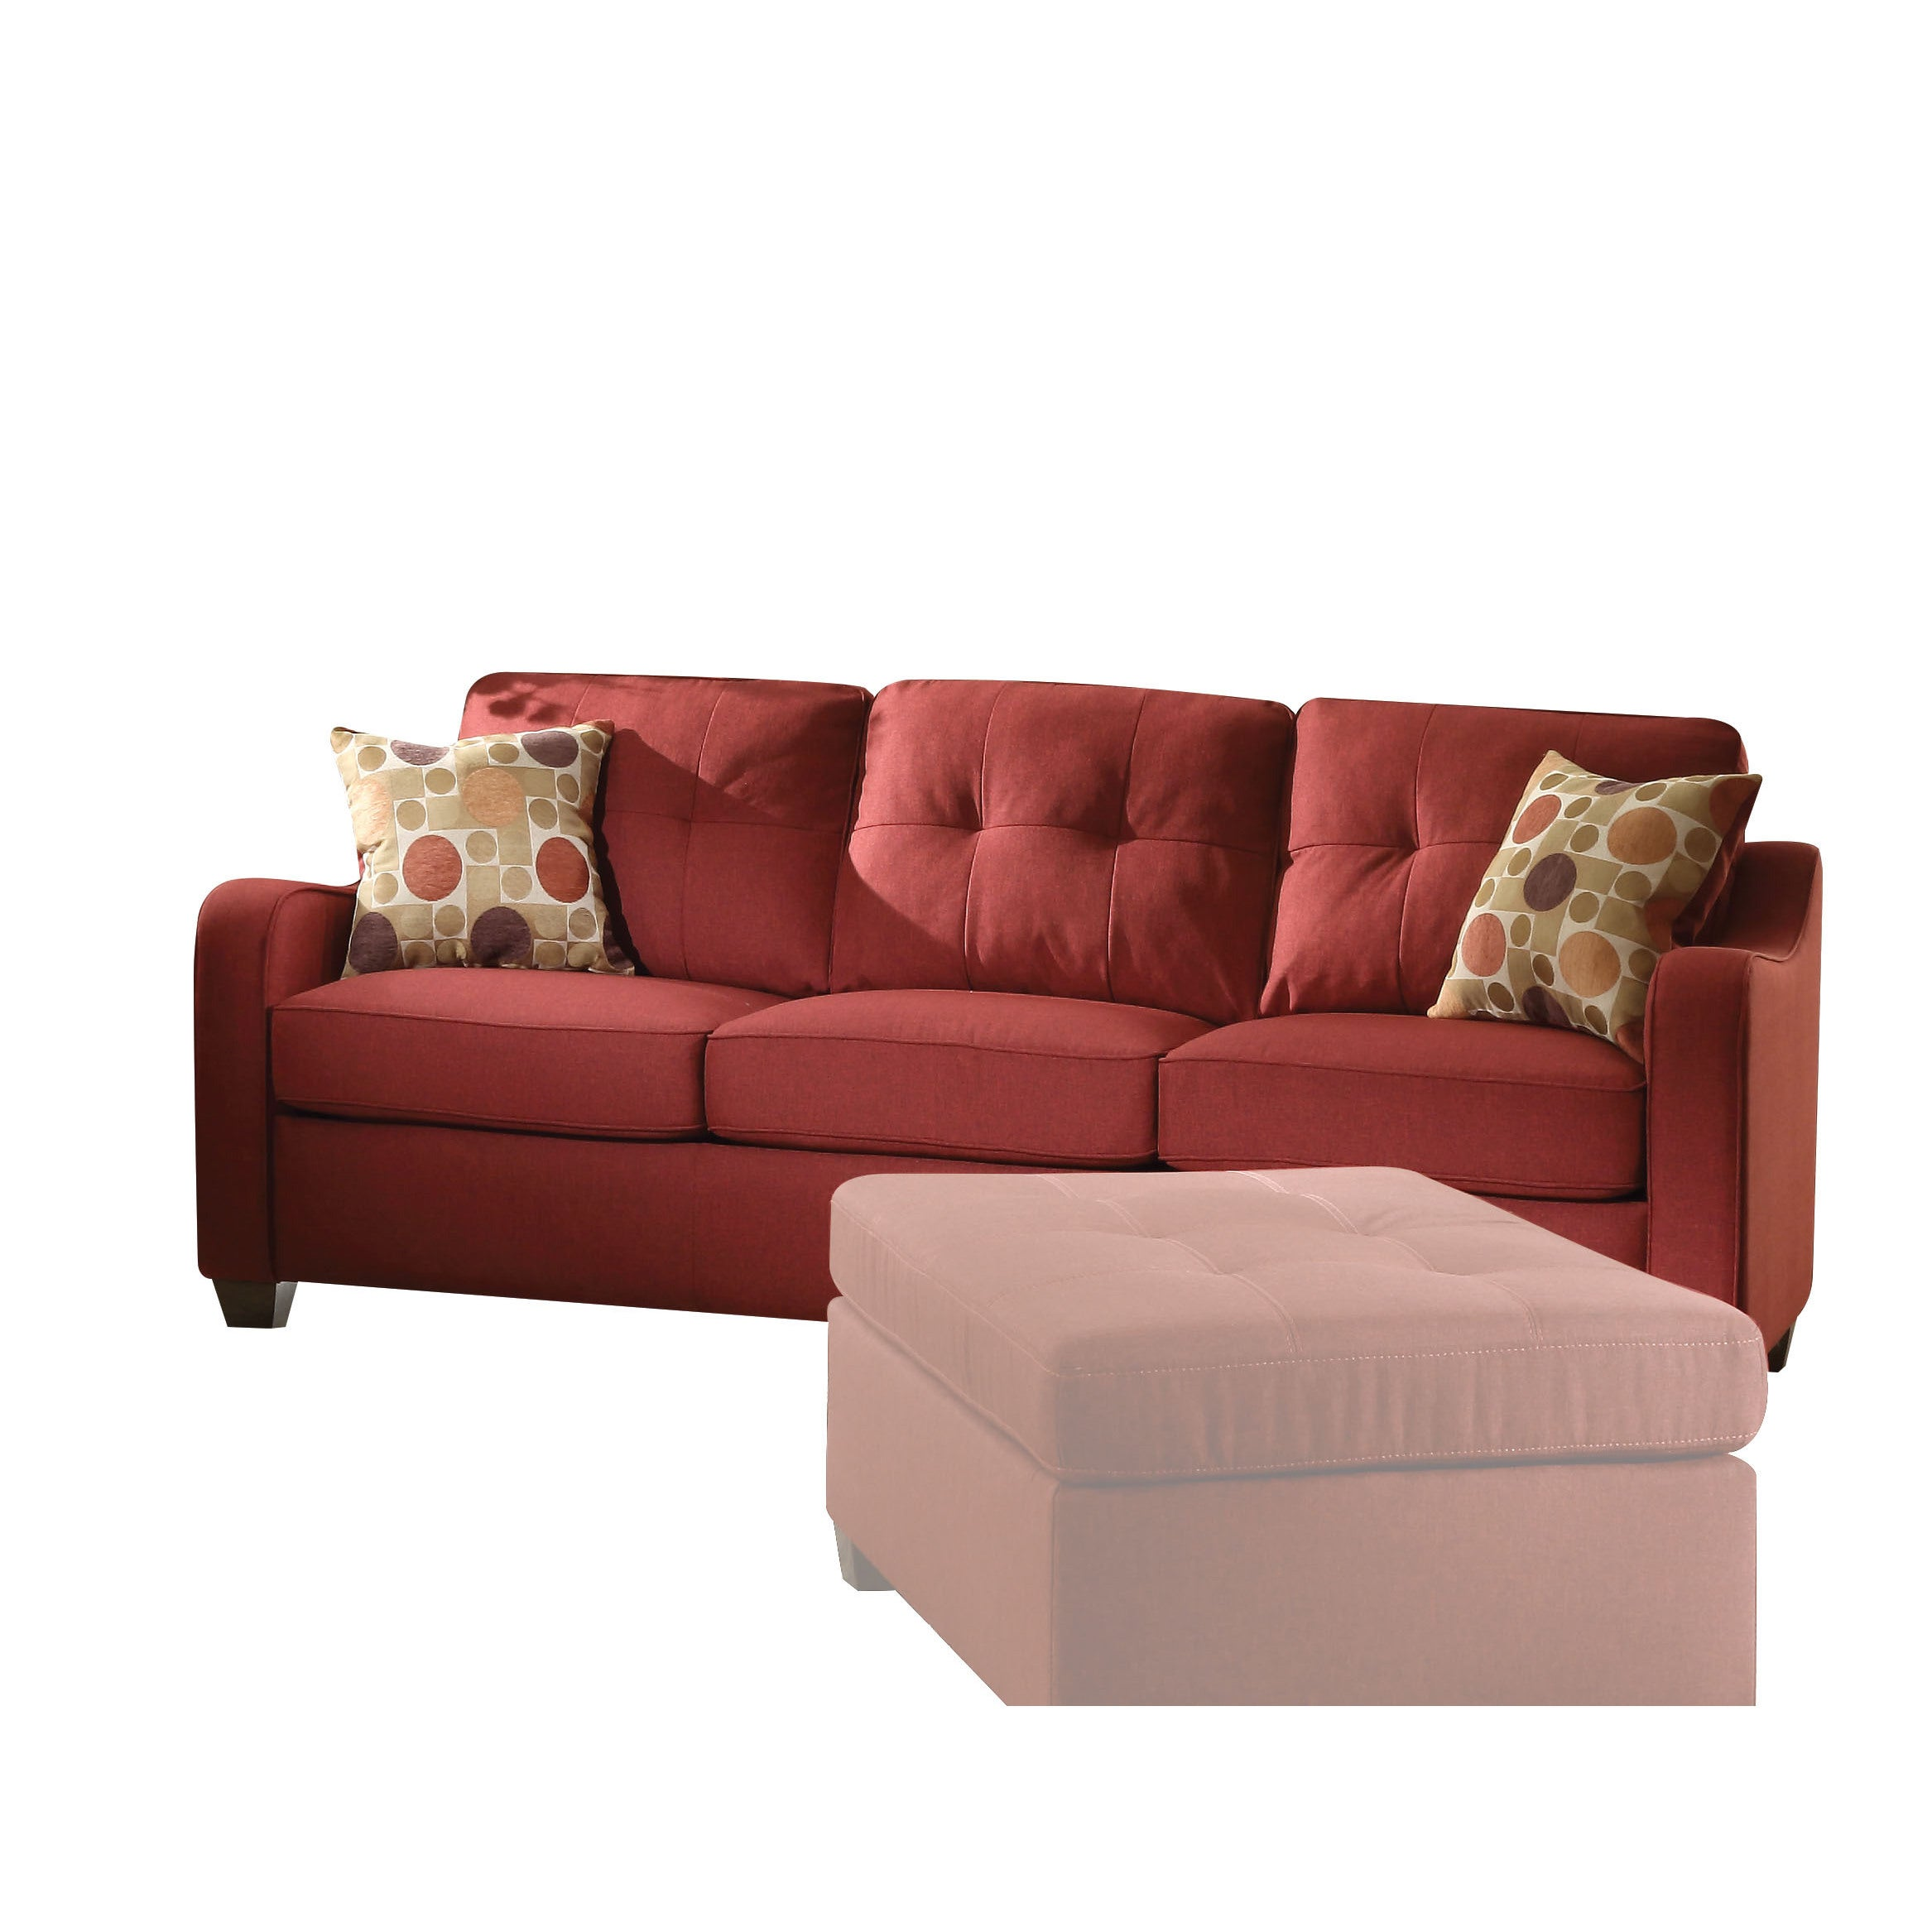 Copper Grove Sharon Red Linen Sofa With Pillows